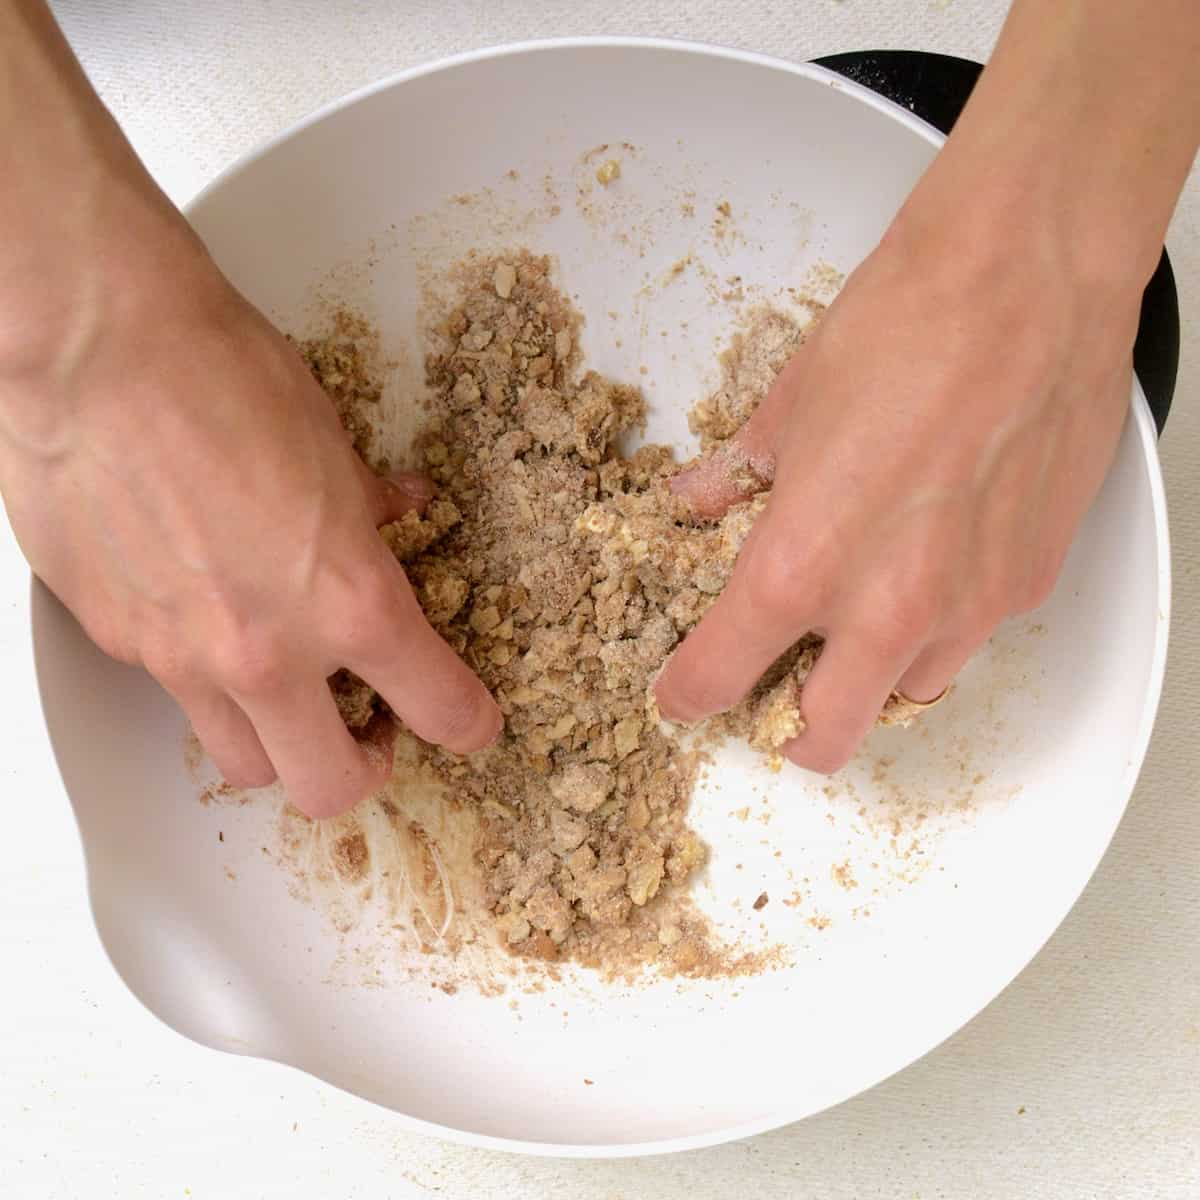 Mixing the streusel topping by hand.